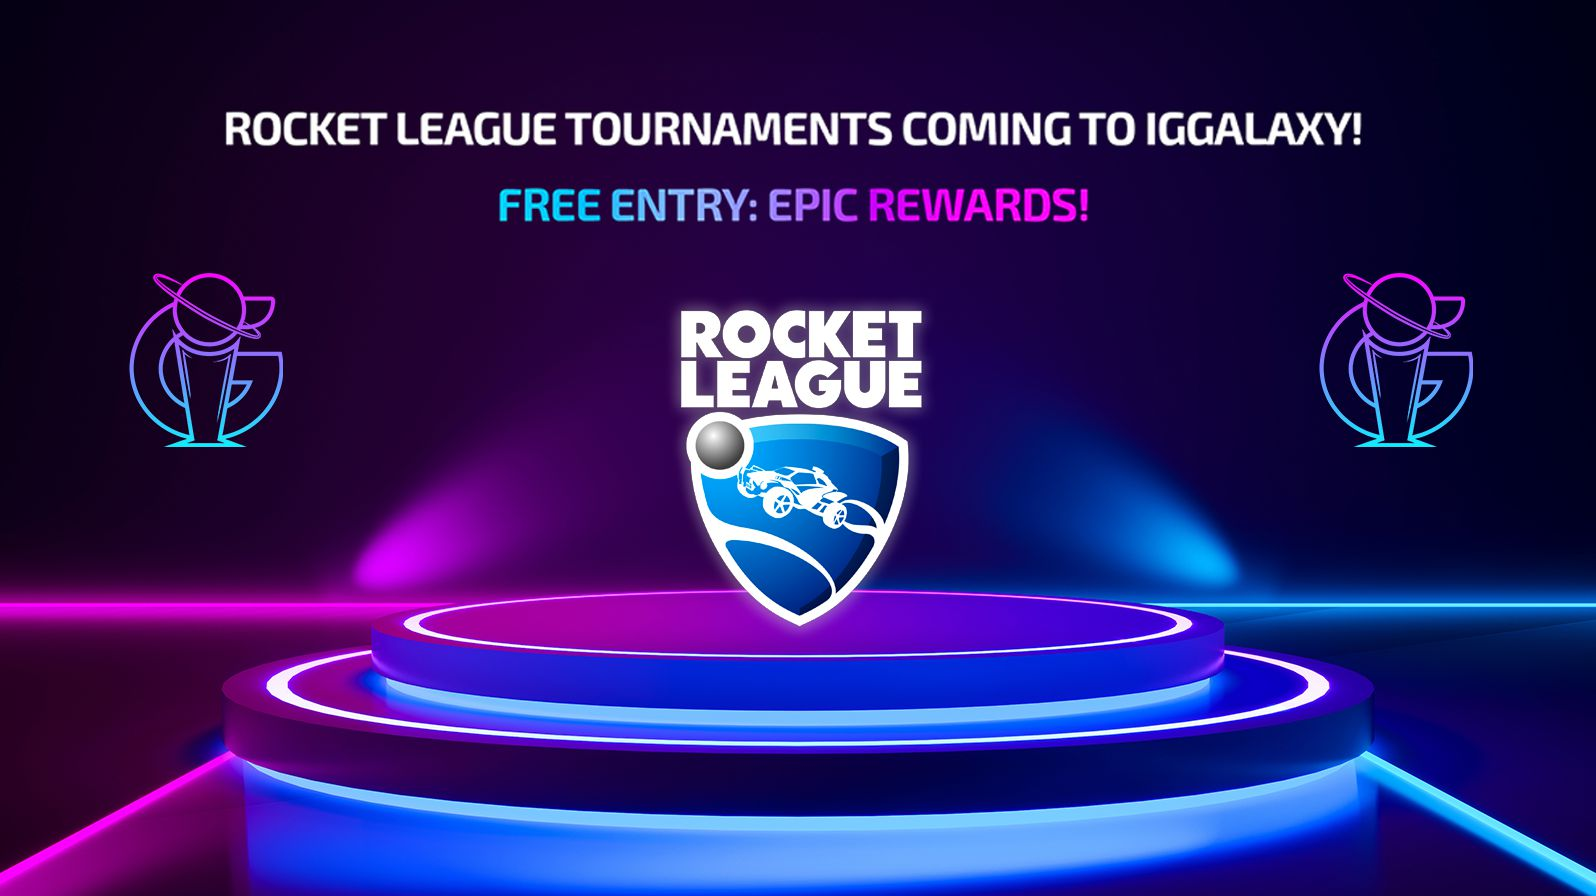 Rocket League tournaments coming to IGGalaxy!